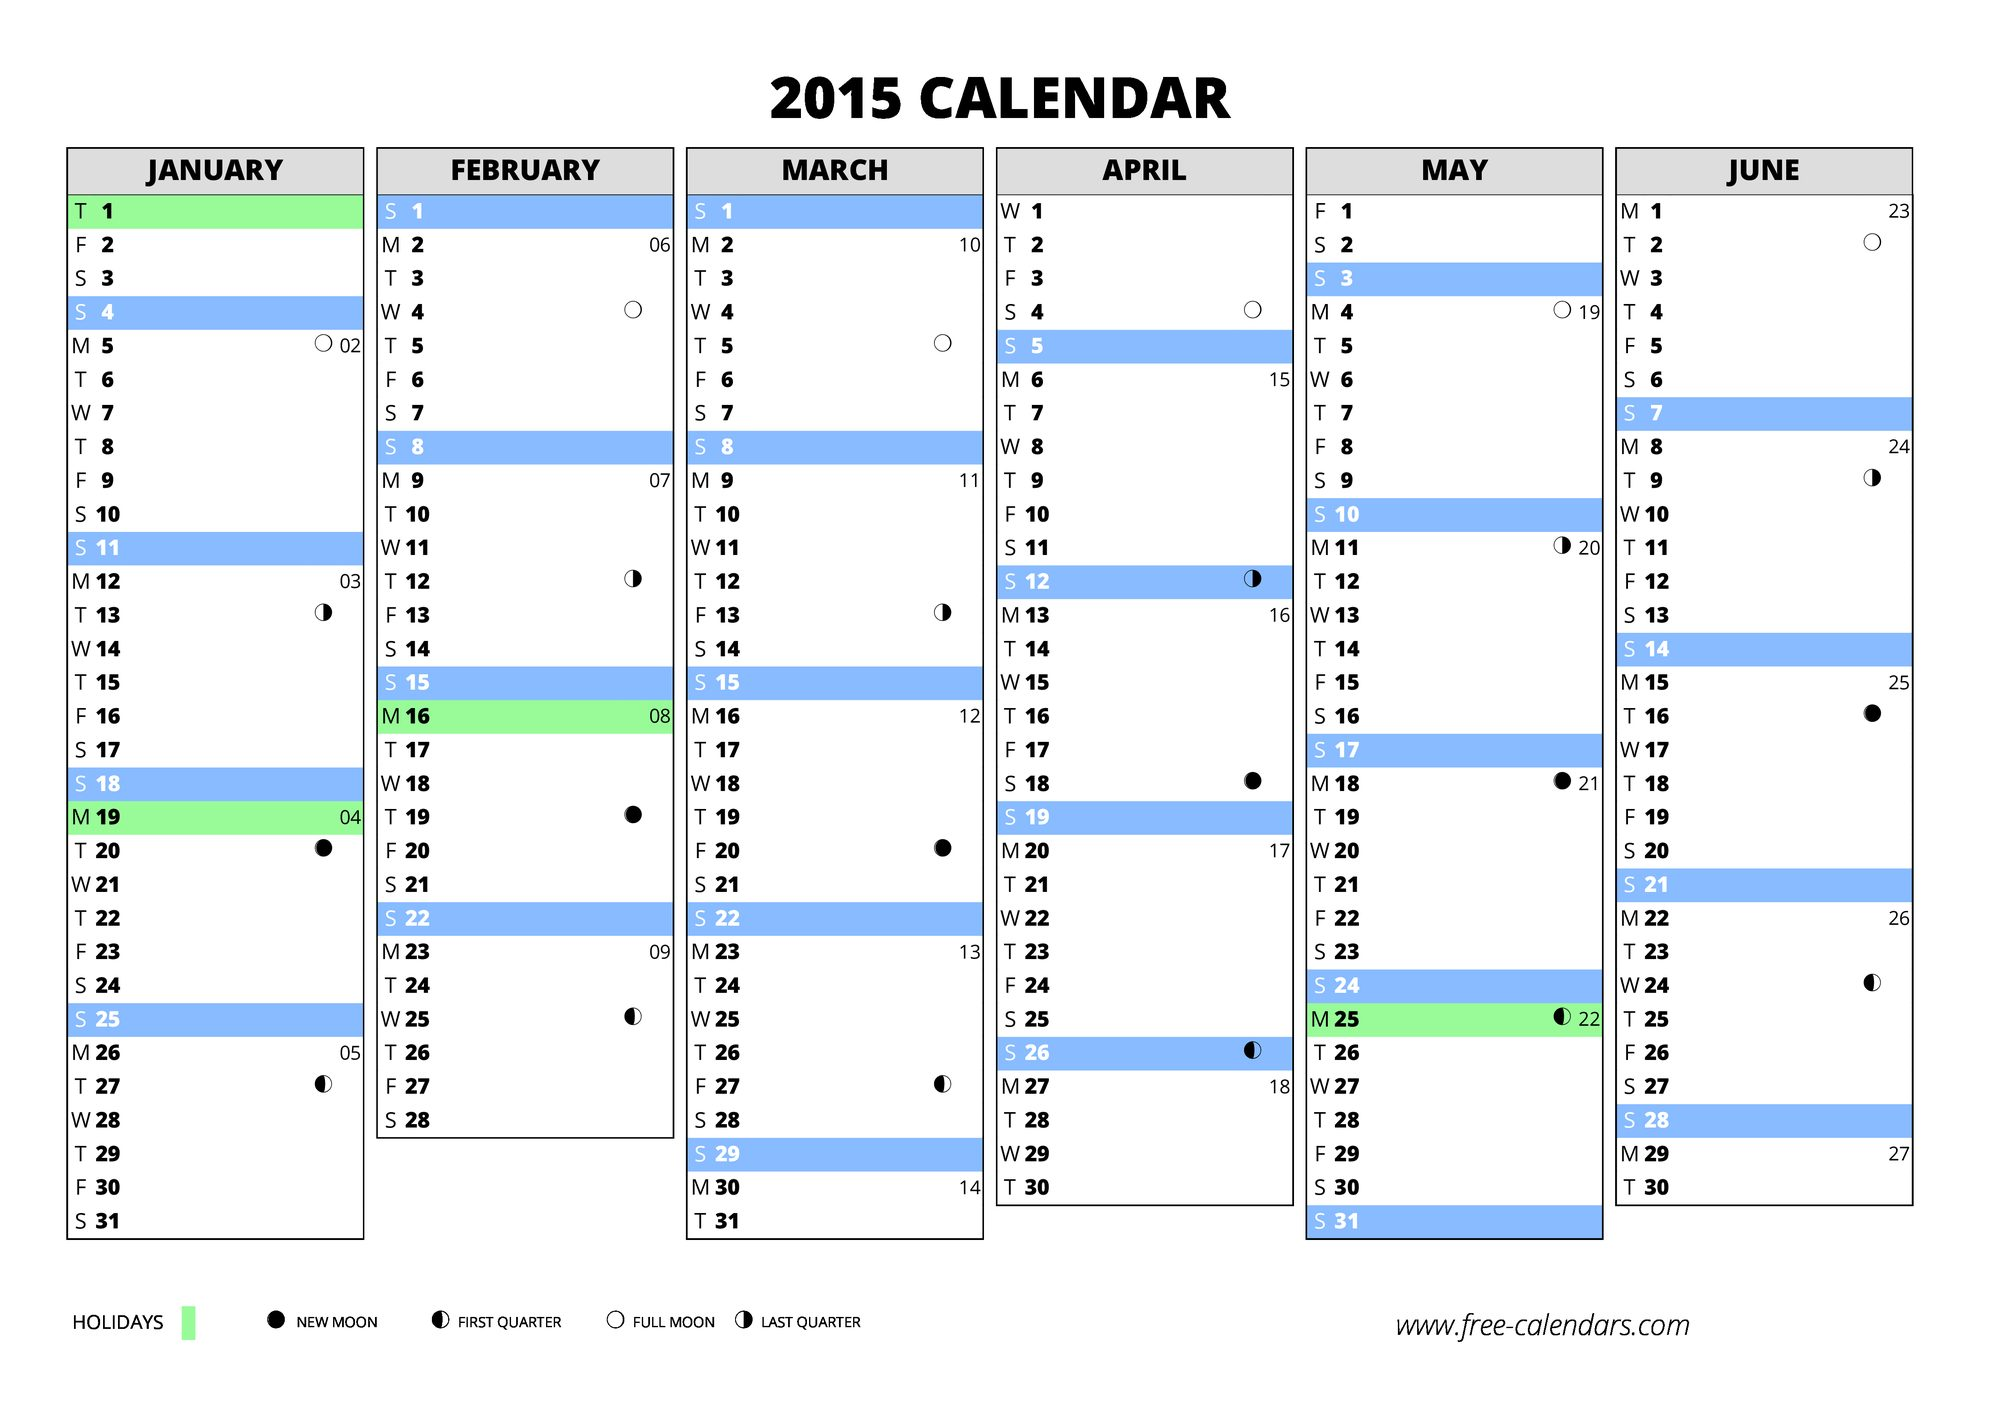 2015 blank first semester 2015 blank second semester portait 2015 calendar